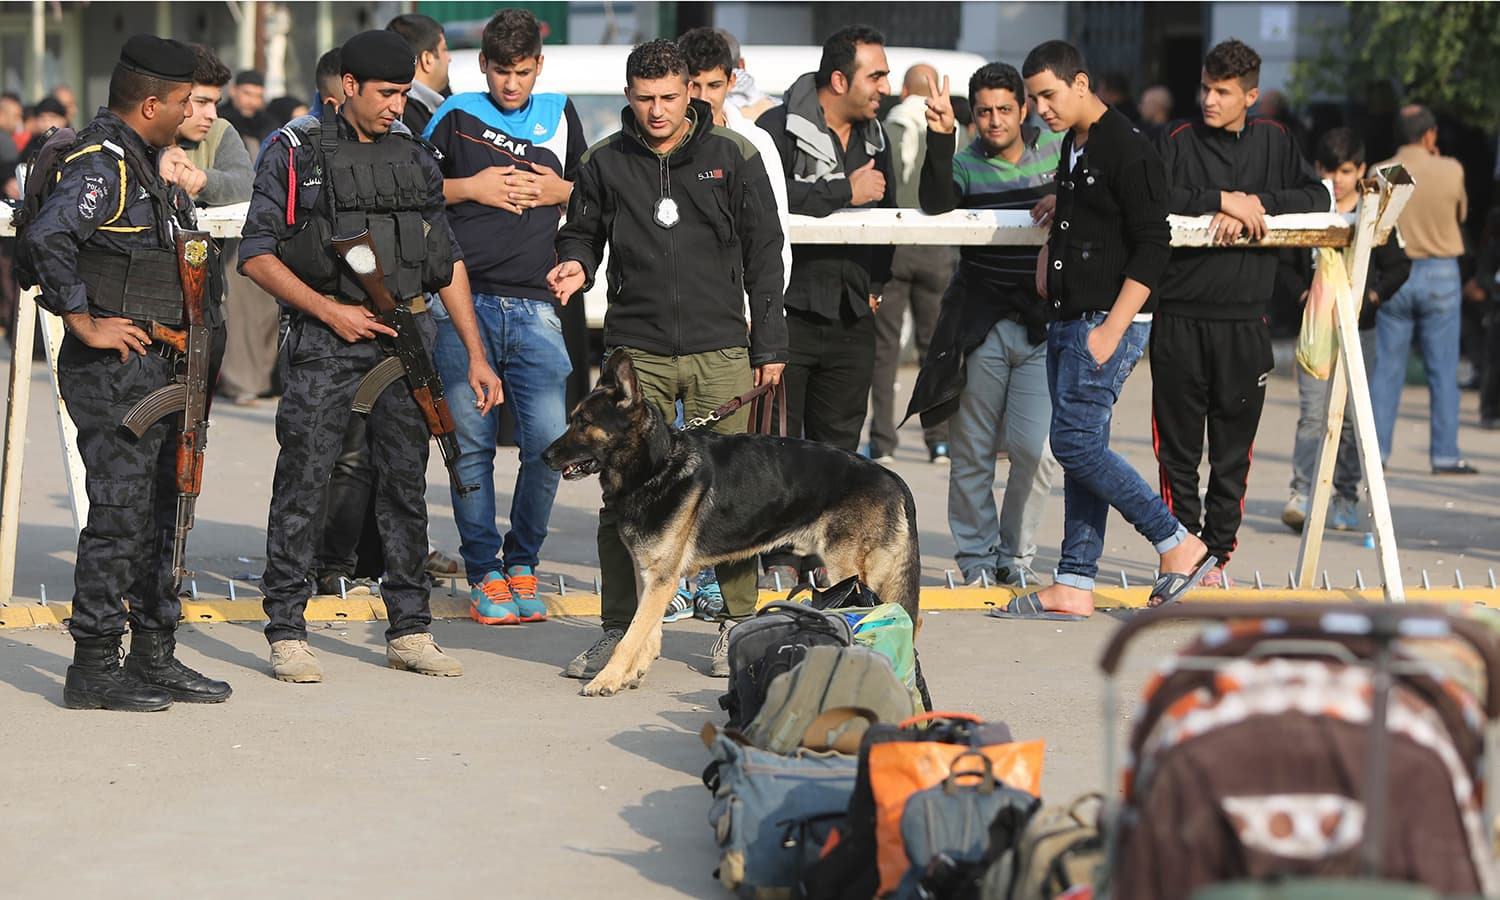 Iraqi security forces use a sniffer dog to inspect the luggage of Shias pilgrims at Baghdad central train station. Iraqi officials say security was stepped up this year for the millions of pilgrims who descended on the holy city of Karbala to mark the commemoration of Arbaeen Wednesday. Operations were coordinated between the interior ministry, an umbrella group of militia volunteers and Iranian advisers. —AFP